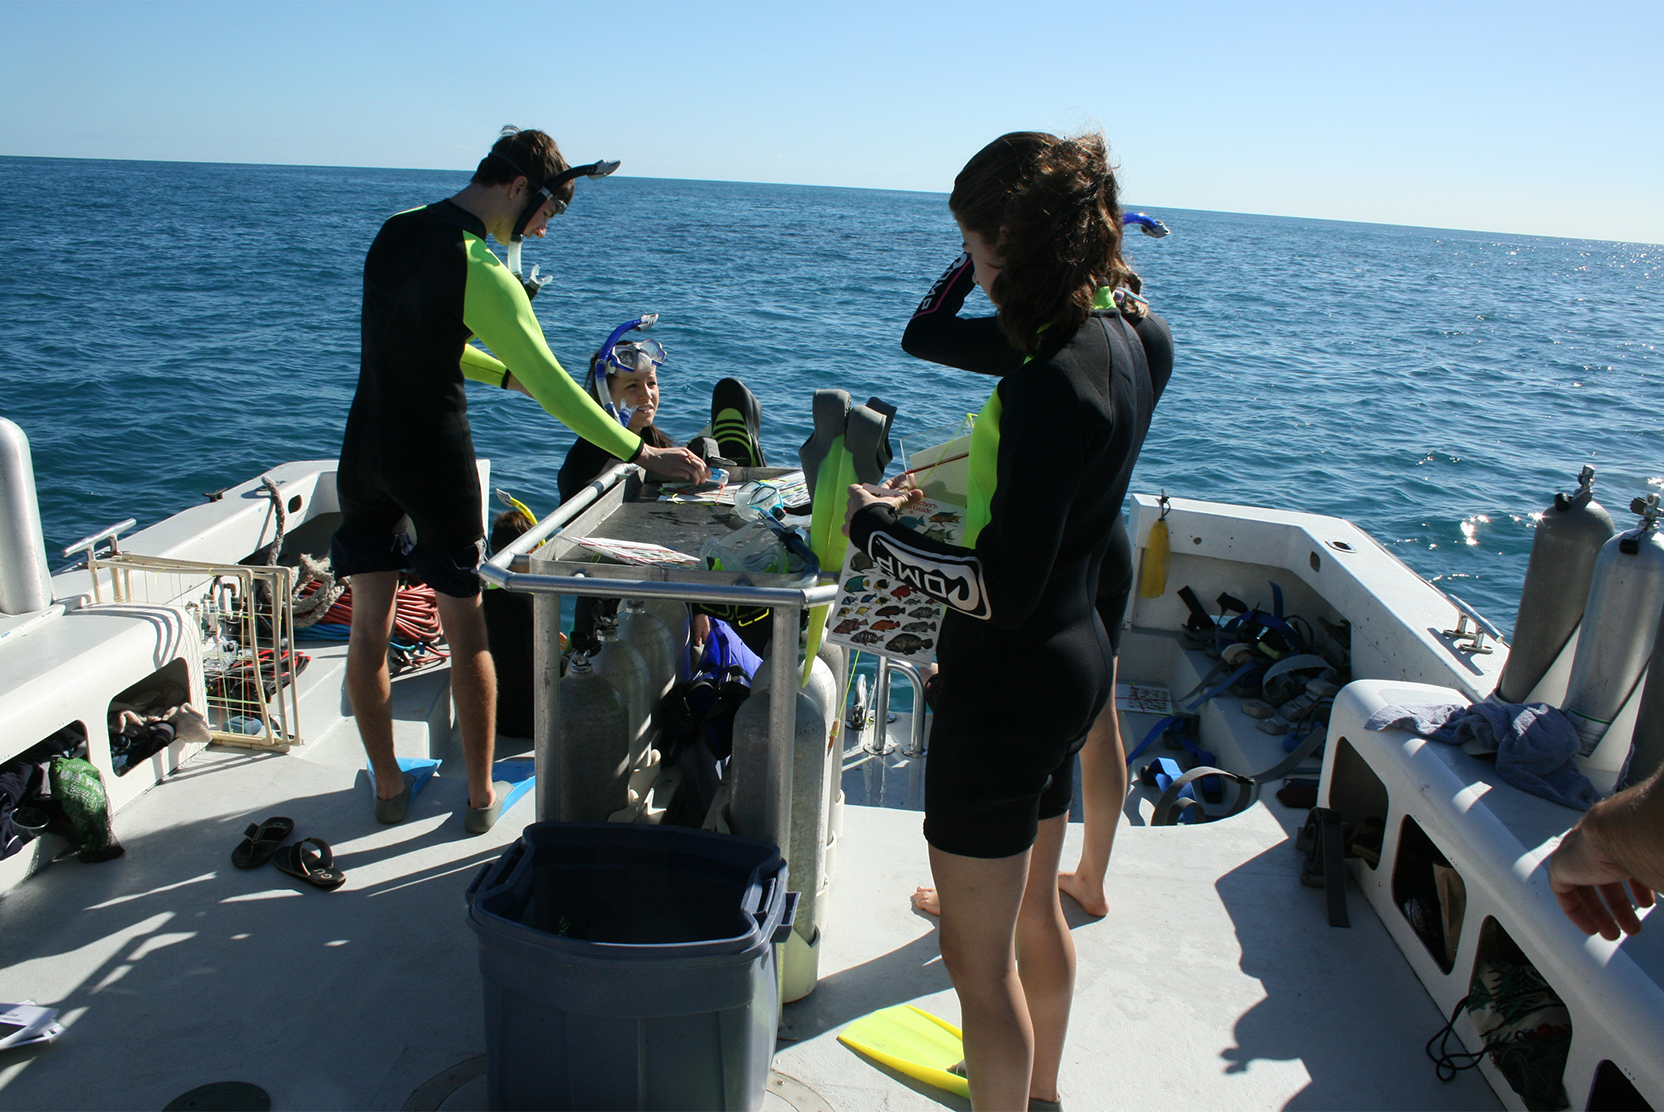 Students with snorkel equipment on a boat in the ocean